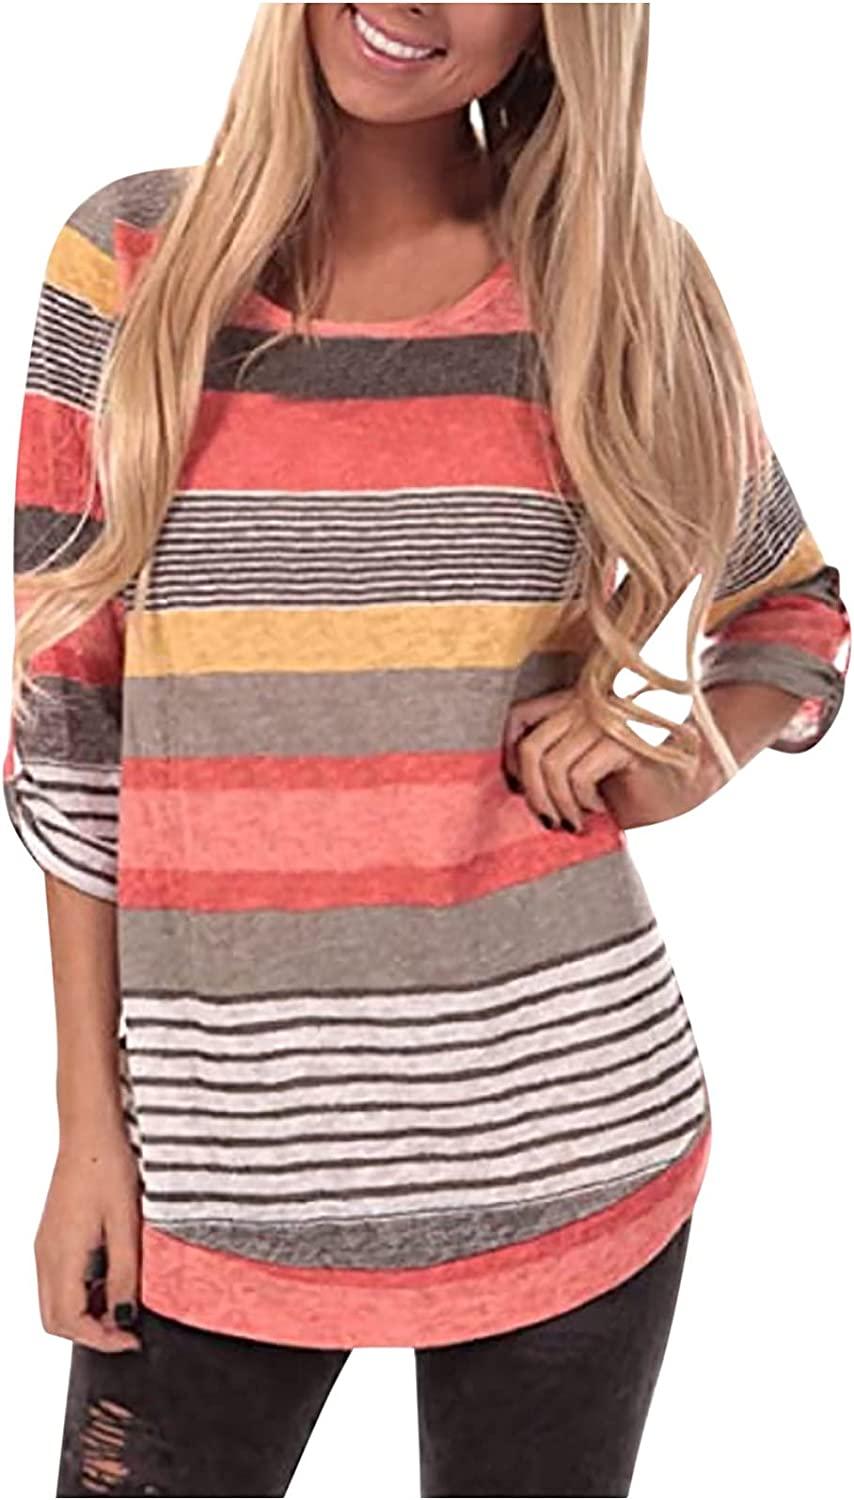 Women's autumn and winter round neck striped stitching loose fashion casual long-sleeved top